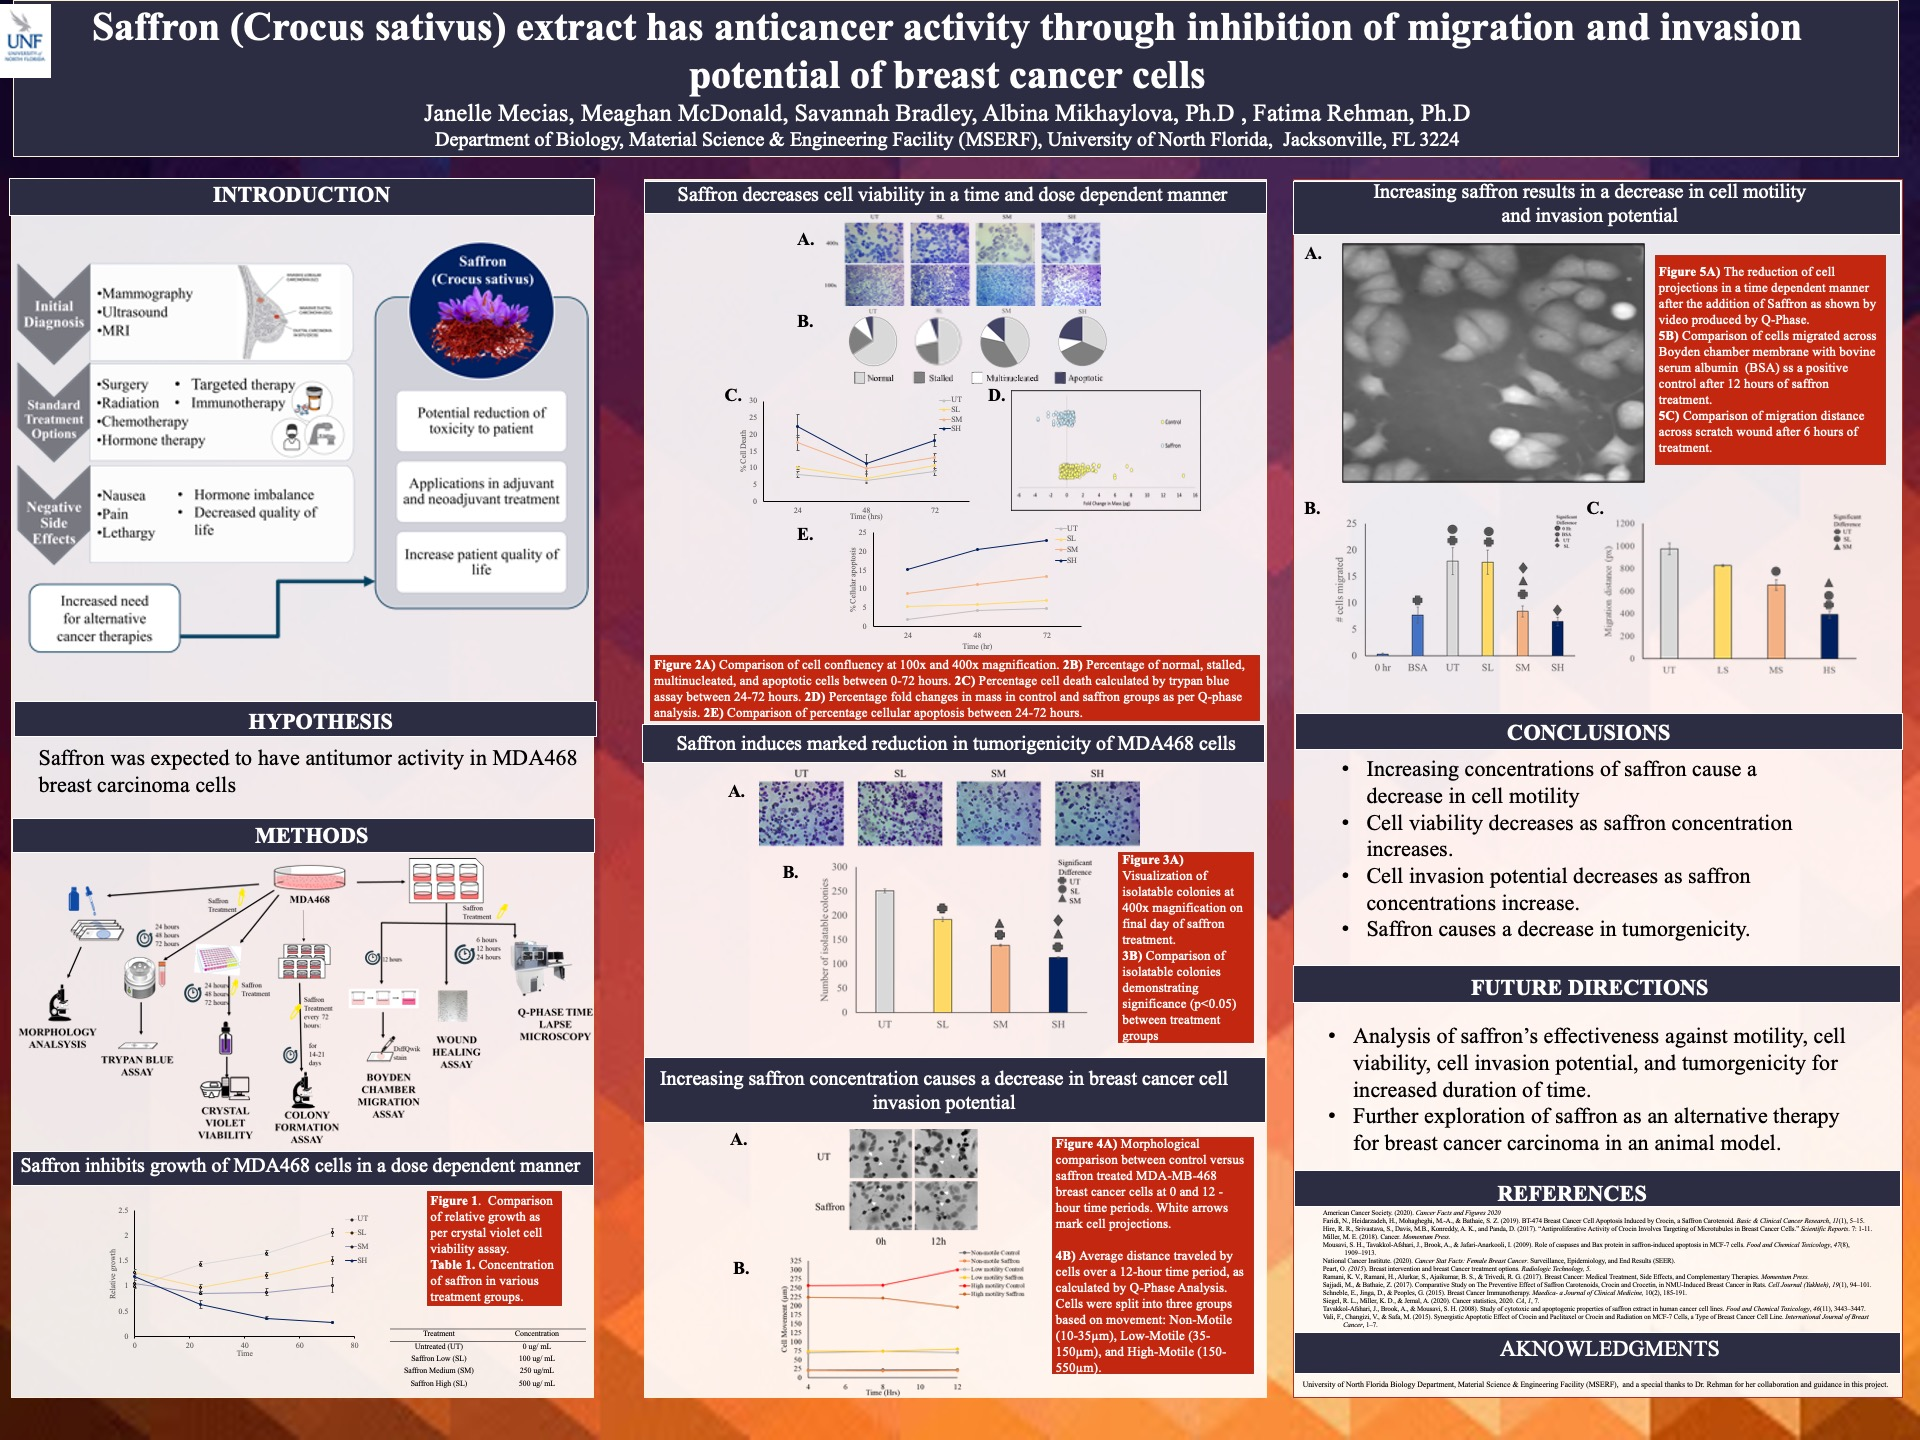 Saffron (Crocus sativus) extract has anticancer activity through inhibition of migration and invasion potential of breast cancer cells poster